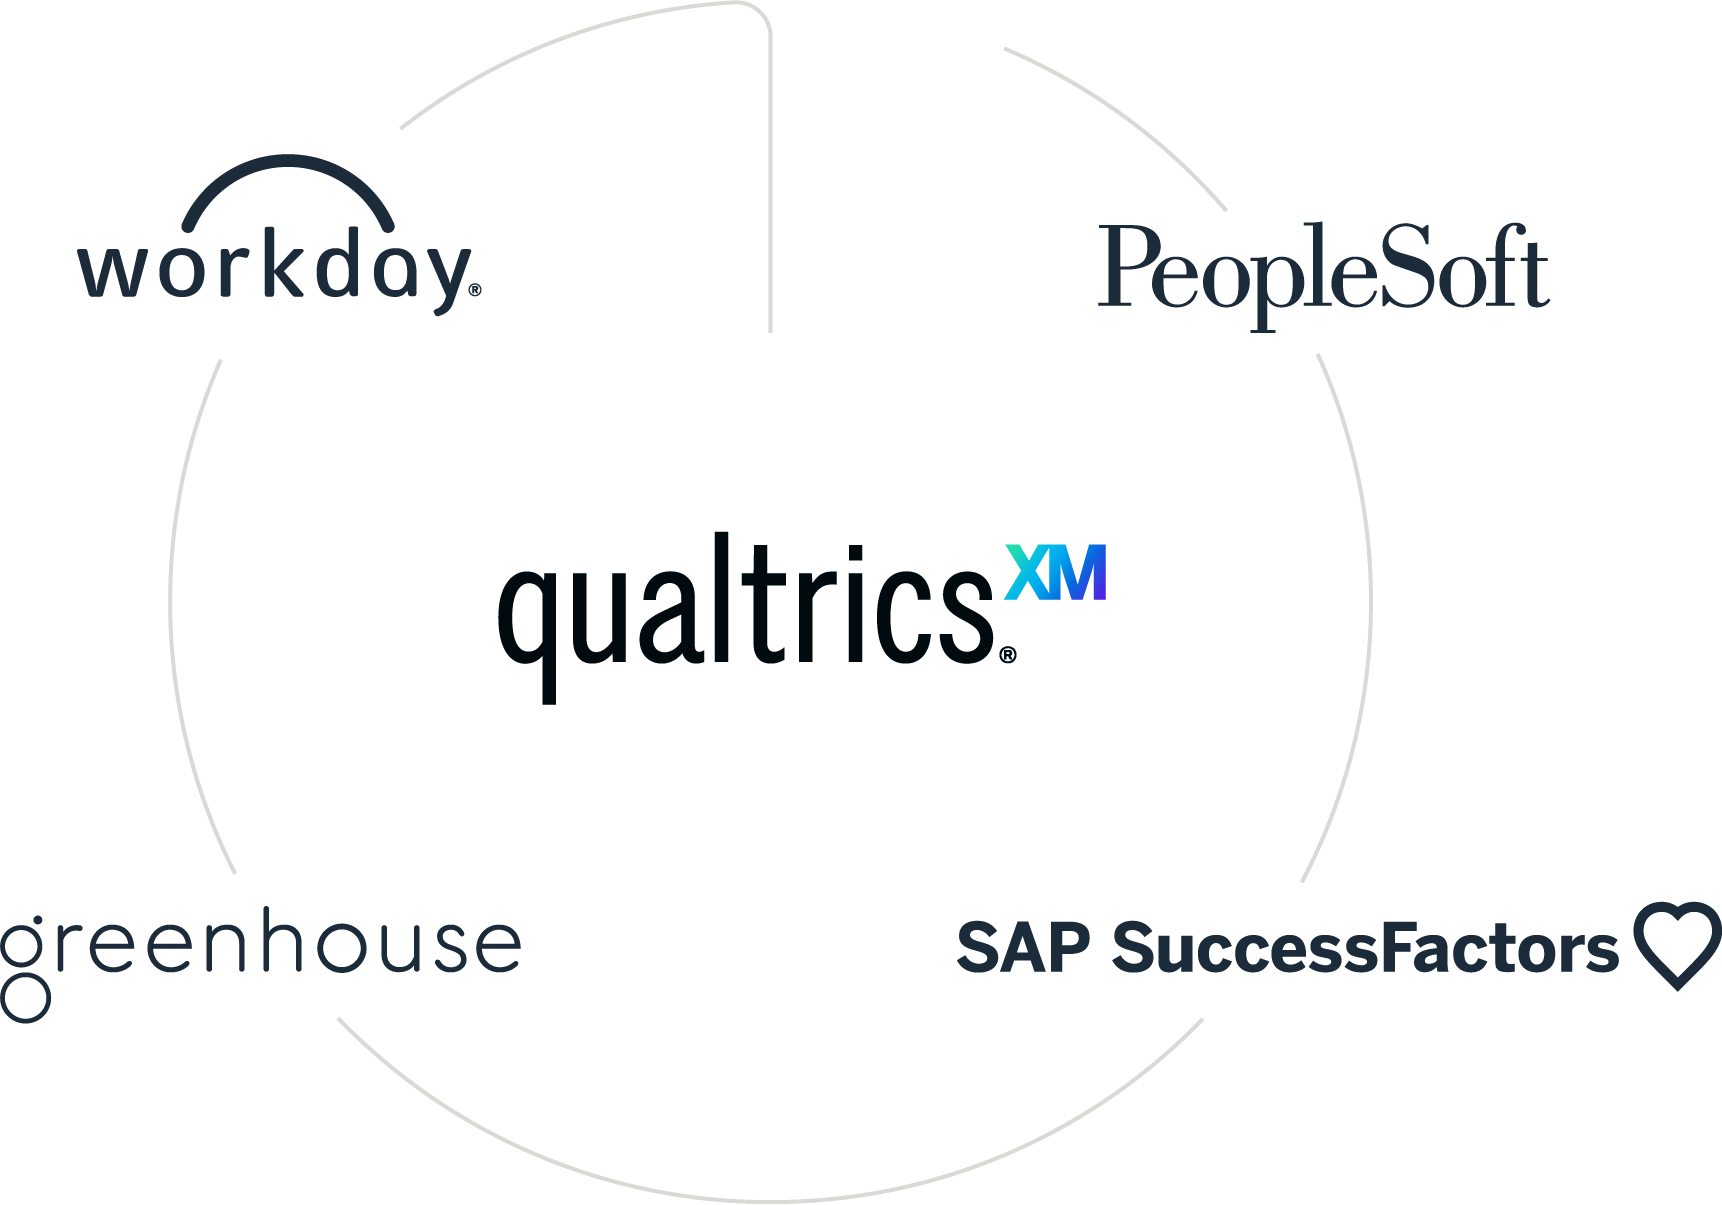 Qualtrics integrations with Workday, Peoplesoft, SAP SuccessFactors, Greenhouse and others